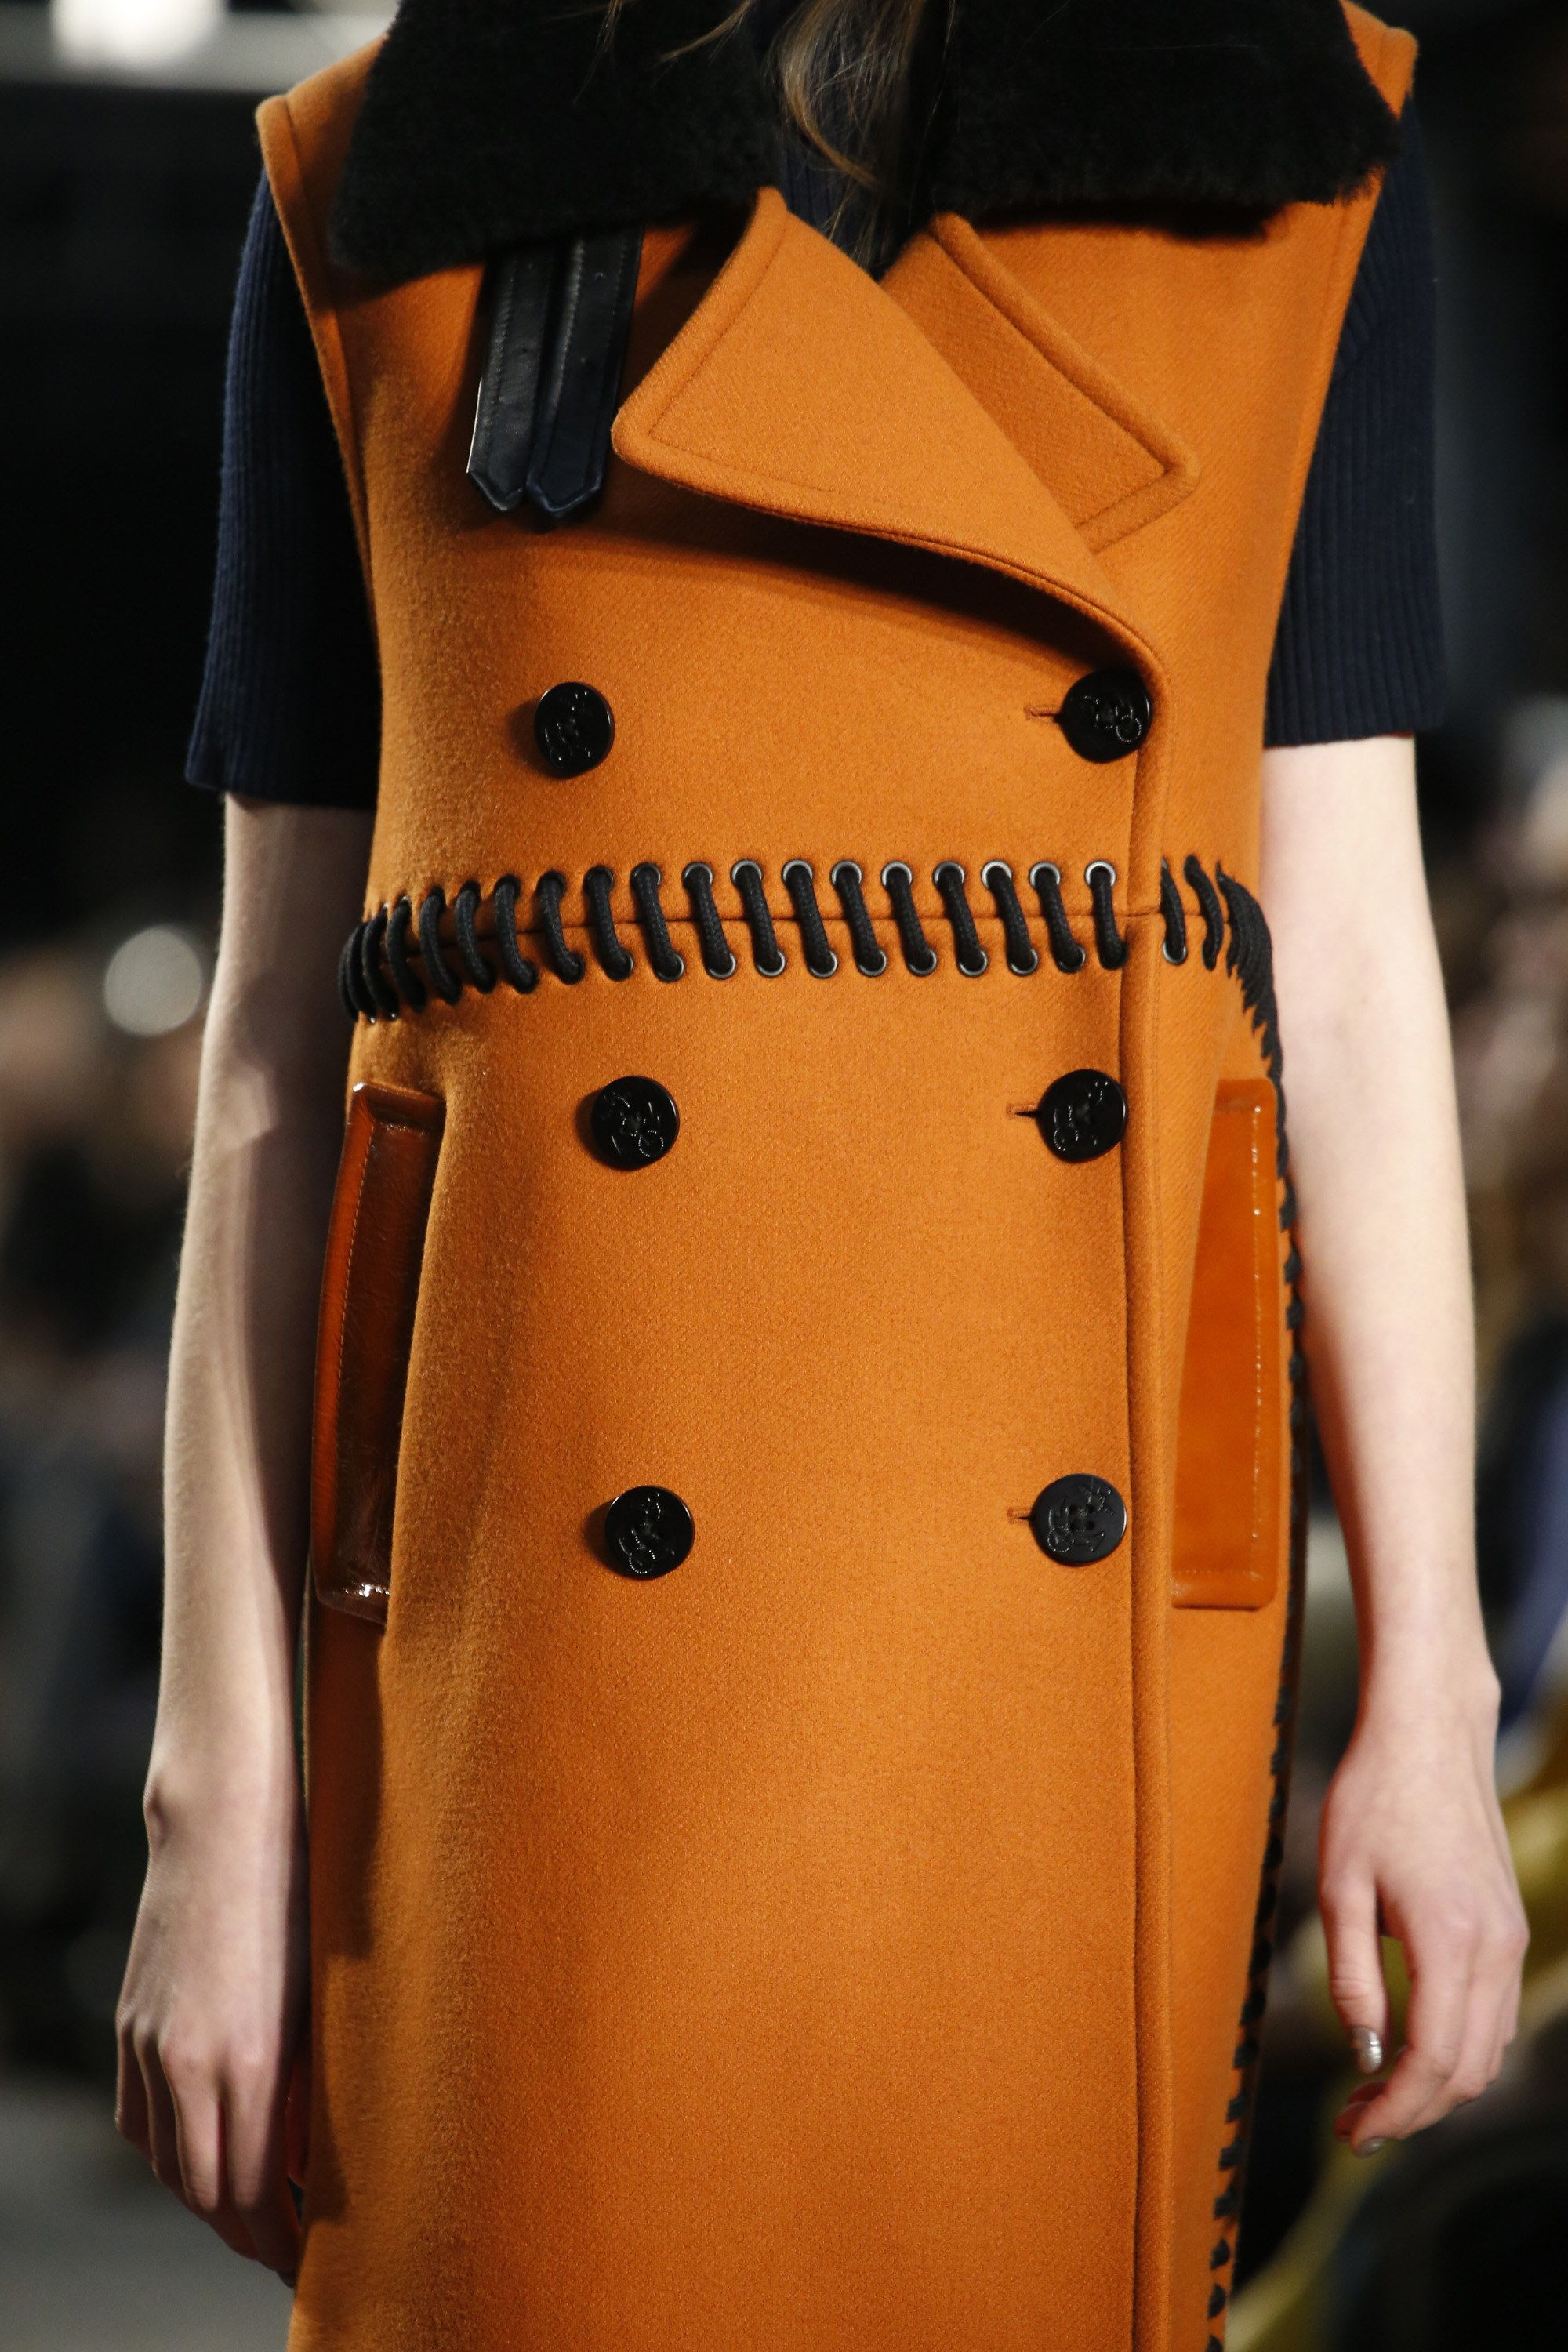 3.1 Phillip Lim Fall 2016 Ready-to-Wear Accessories Photos - Vogue